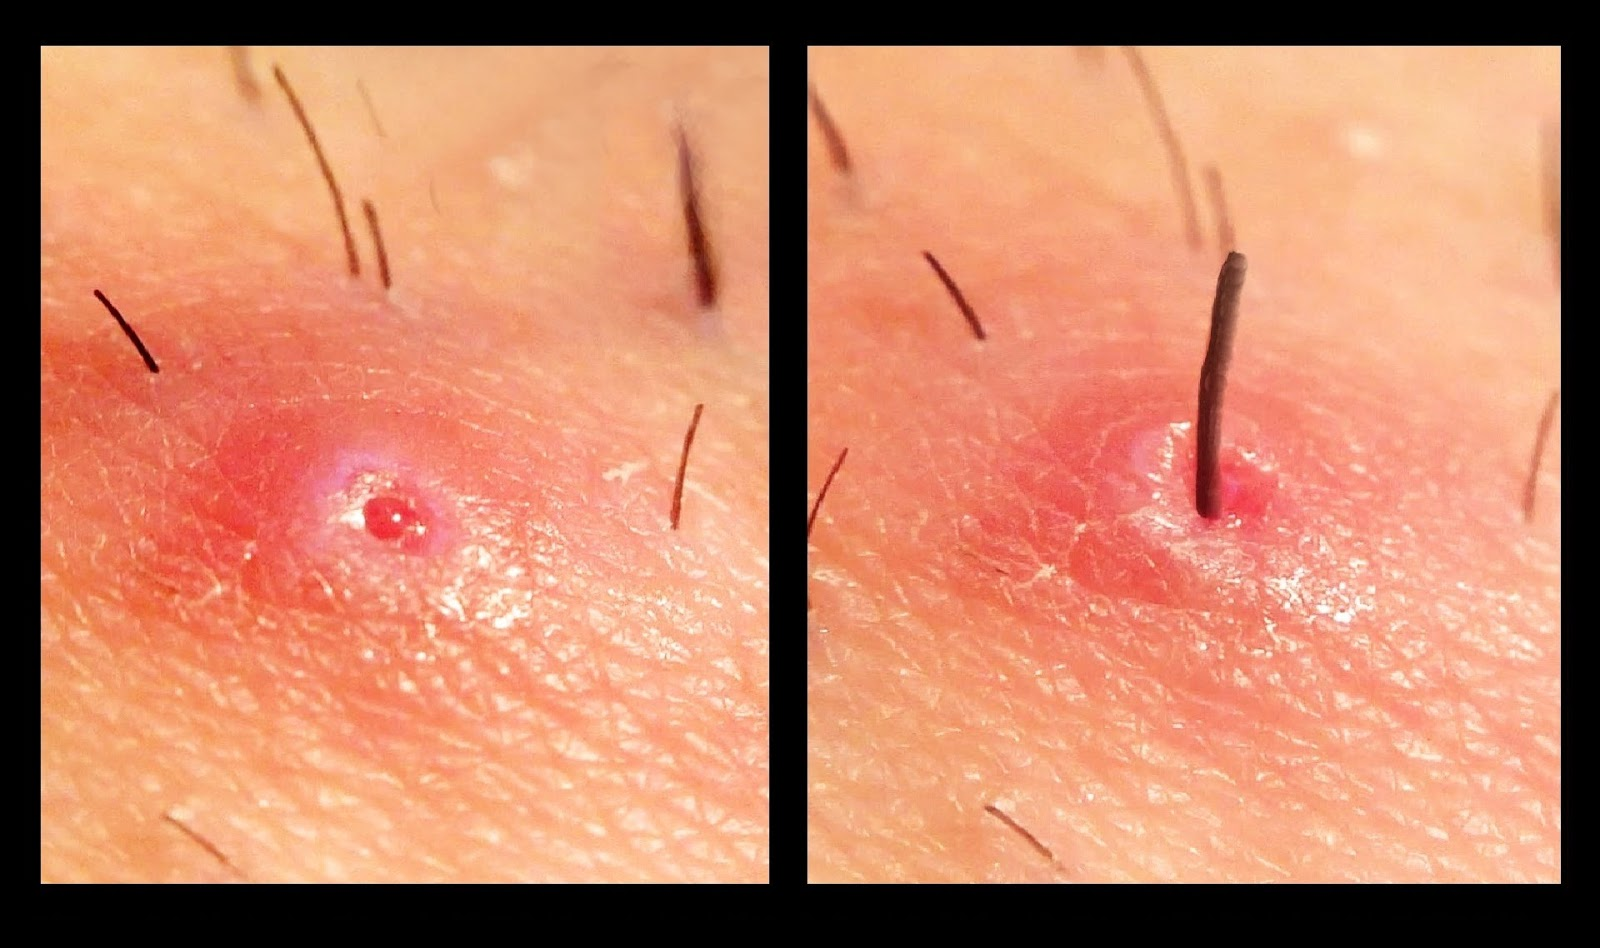 Common nowadays disease: ingrown hair